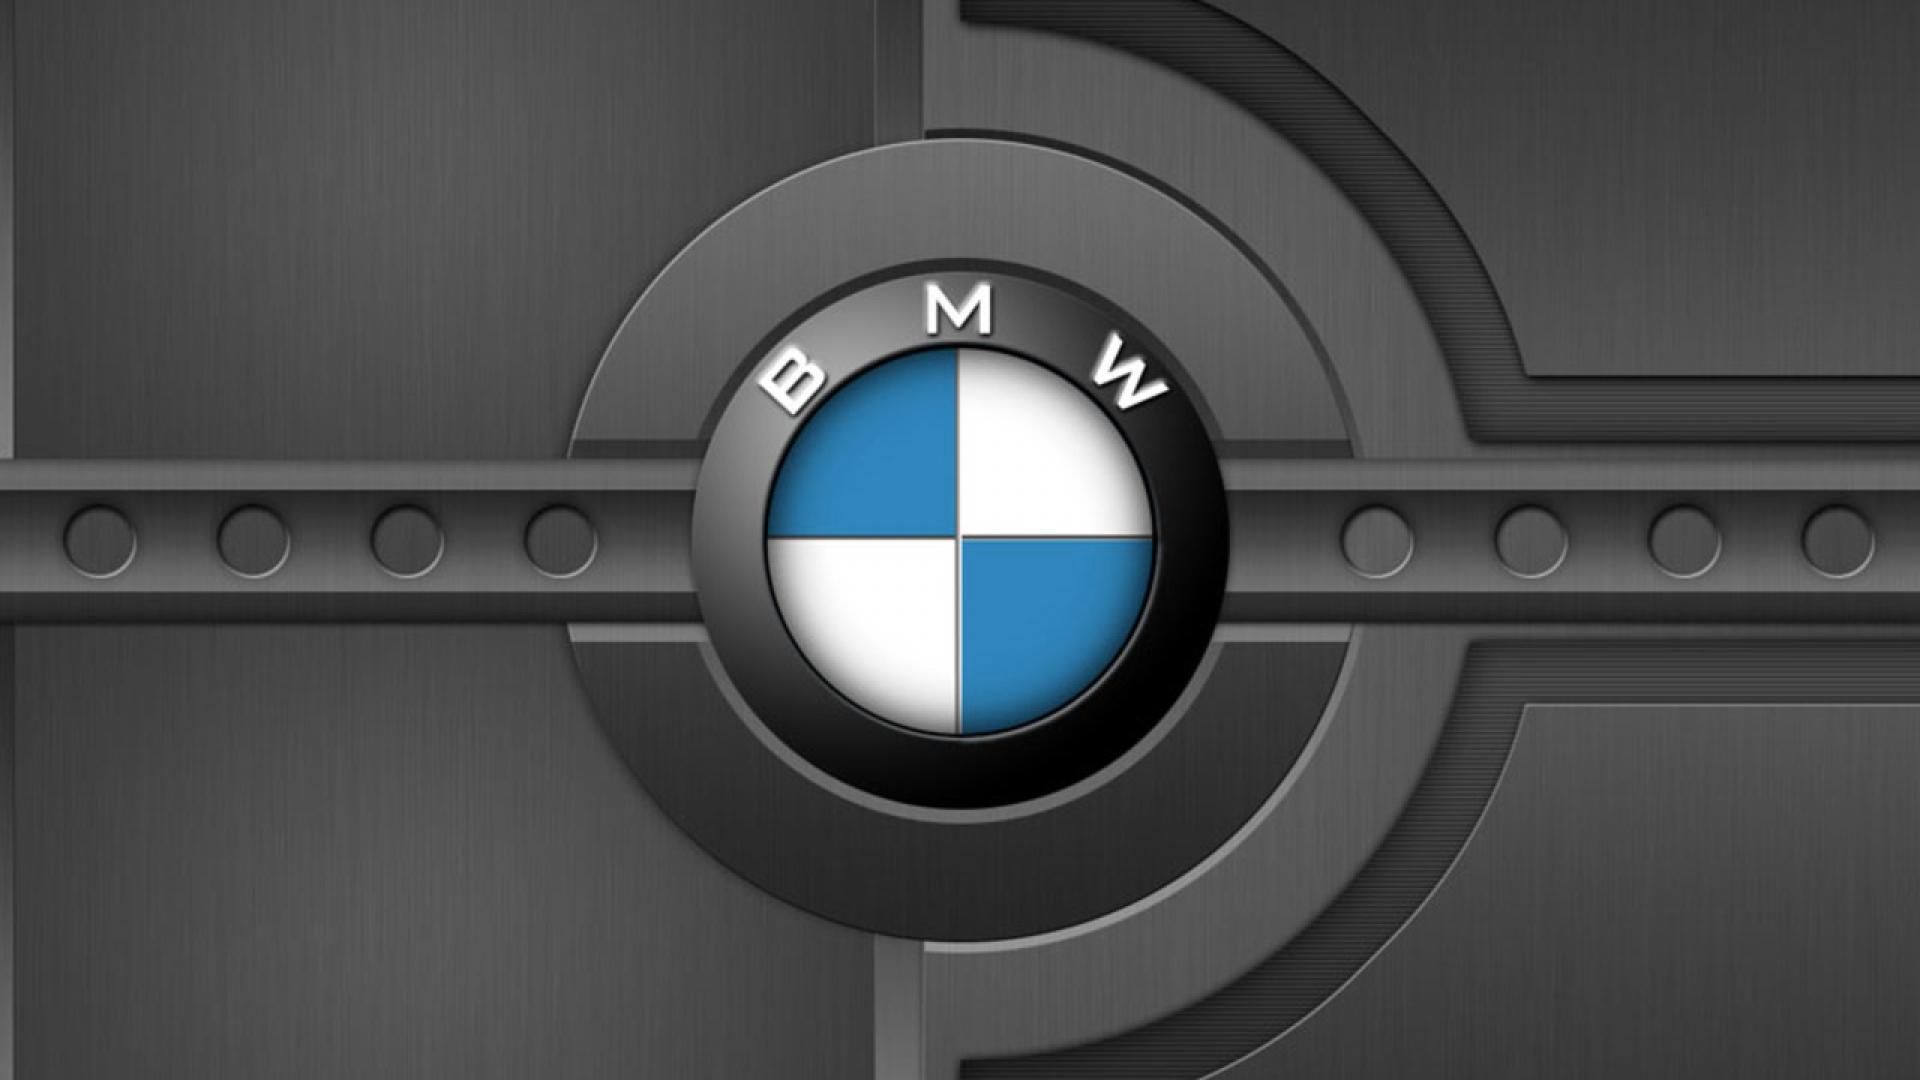 Dr Dre Wallpaper Hd Bmw Logo Wallpapers Pictures Images